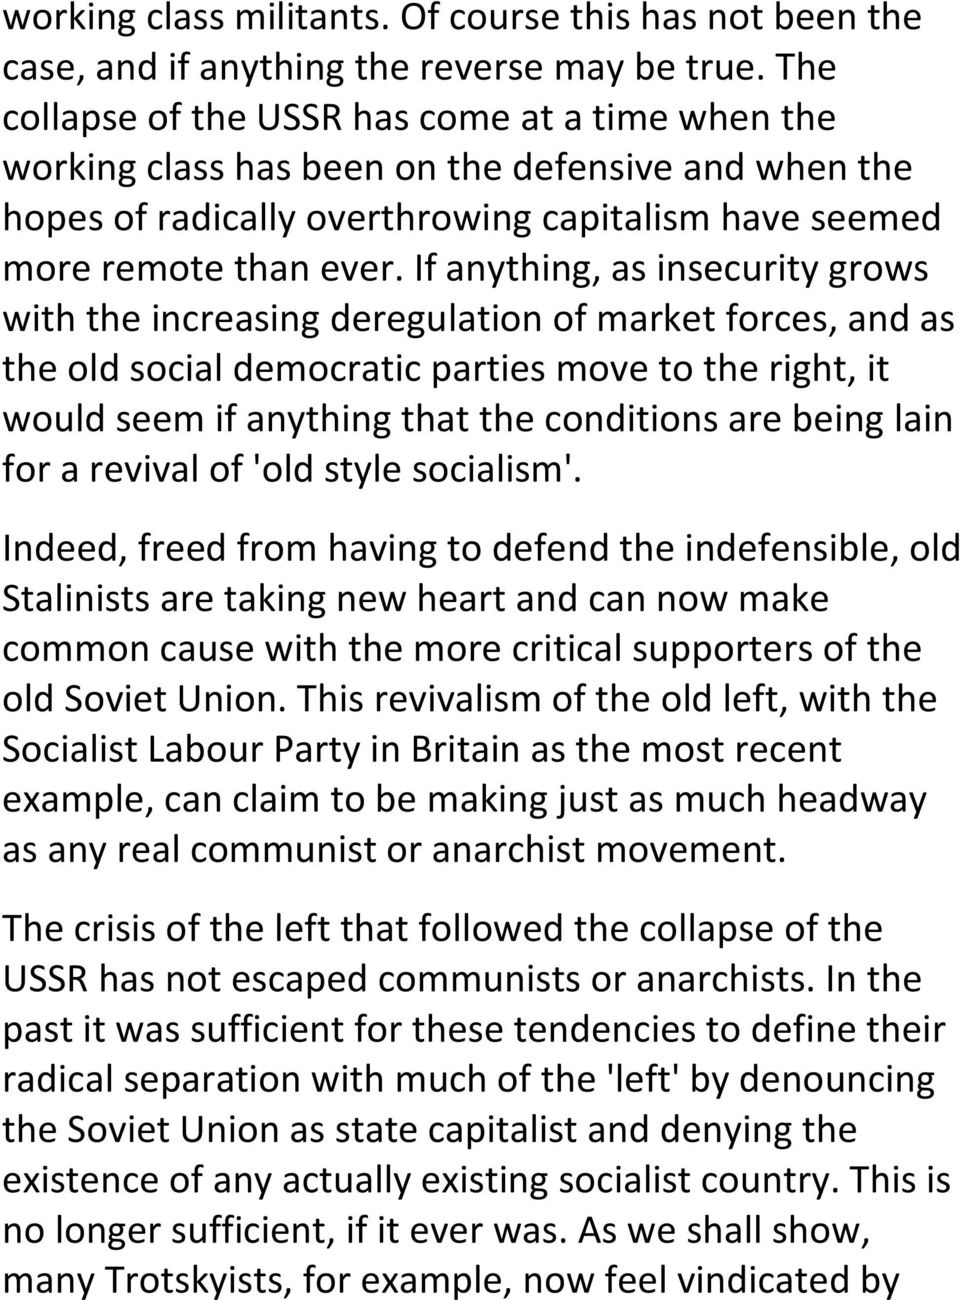 If anything, as insecurity grows with the increasing deregulation of market forces, and as the old social democratic parties move to the right, it would seem if anything that the conditions are being